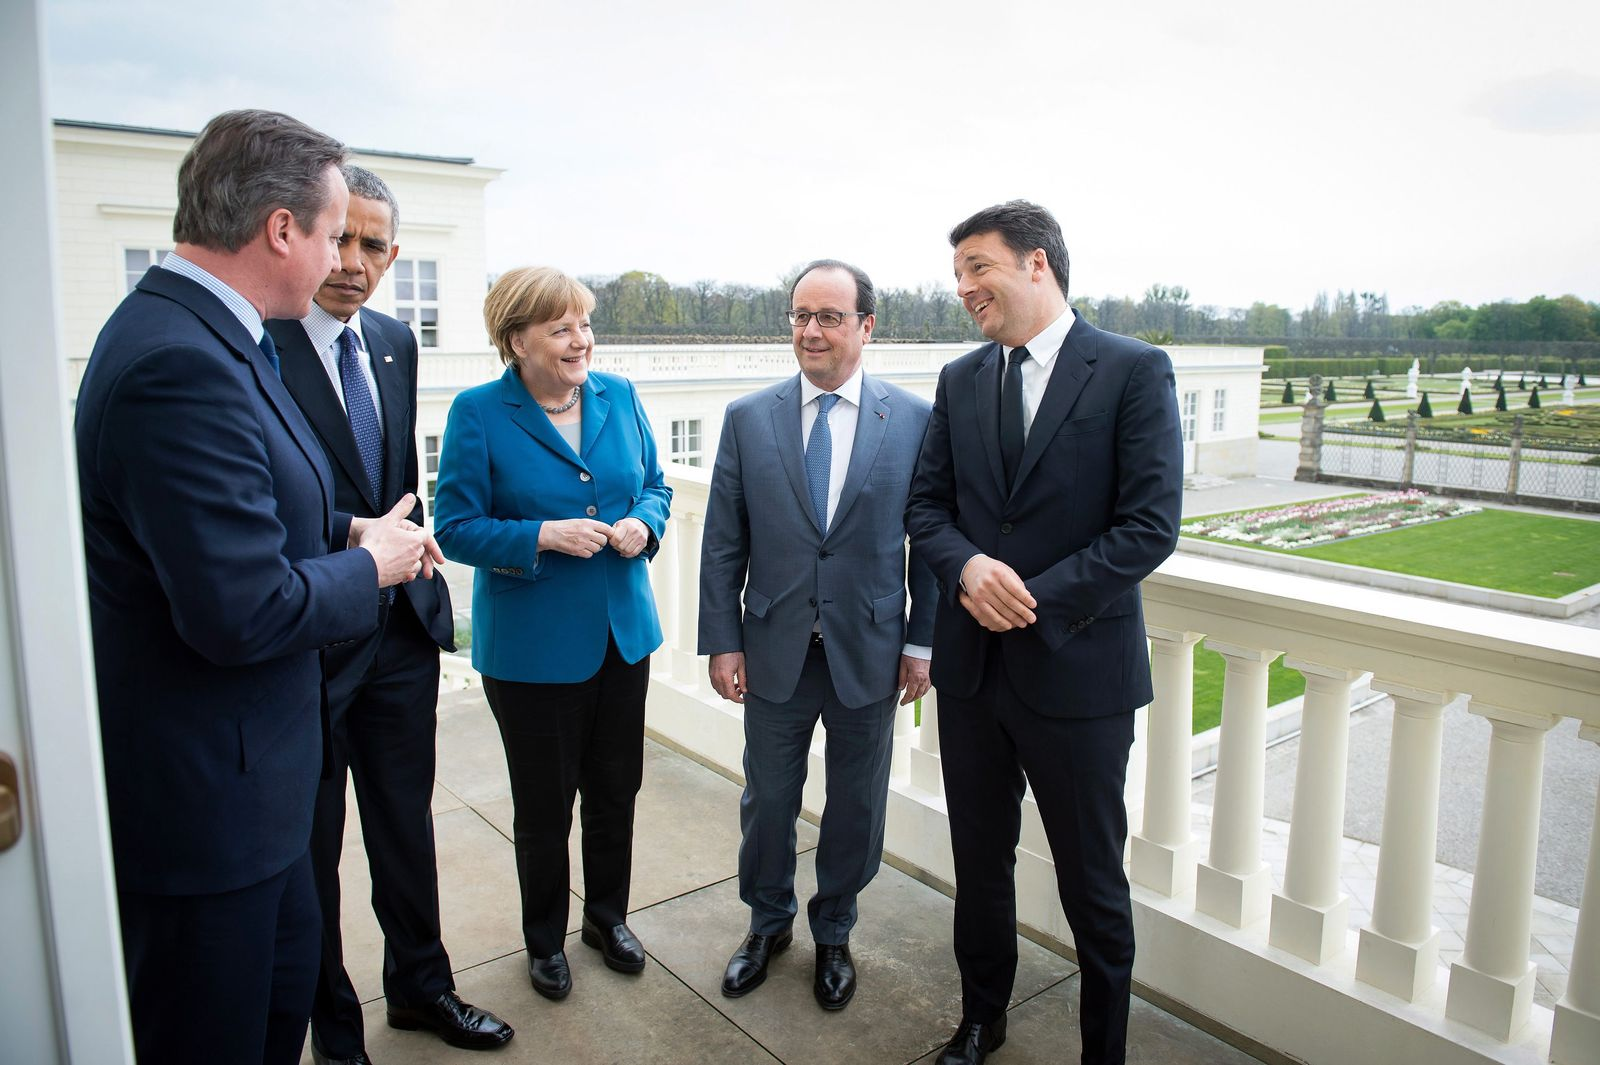 Political summit in Hanover